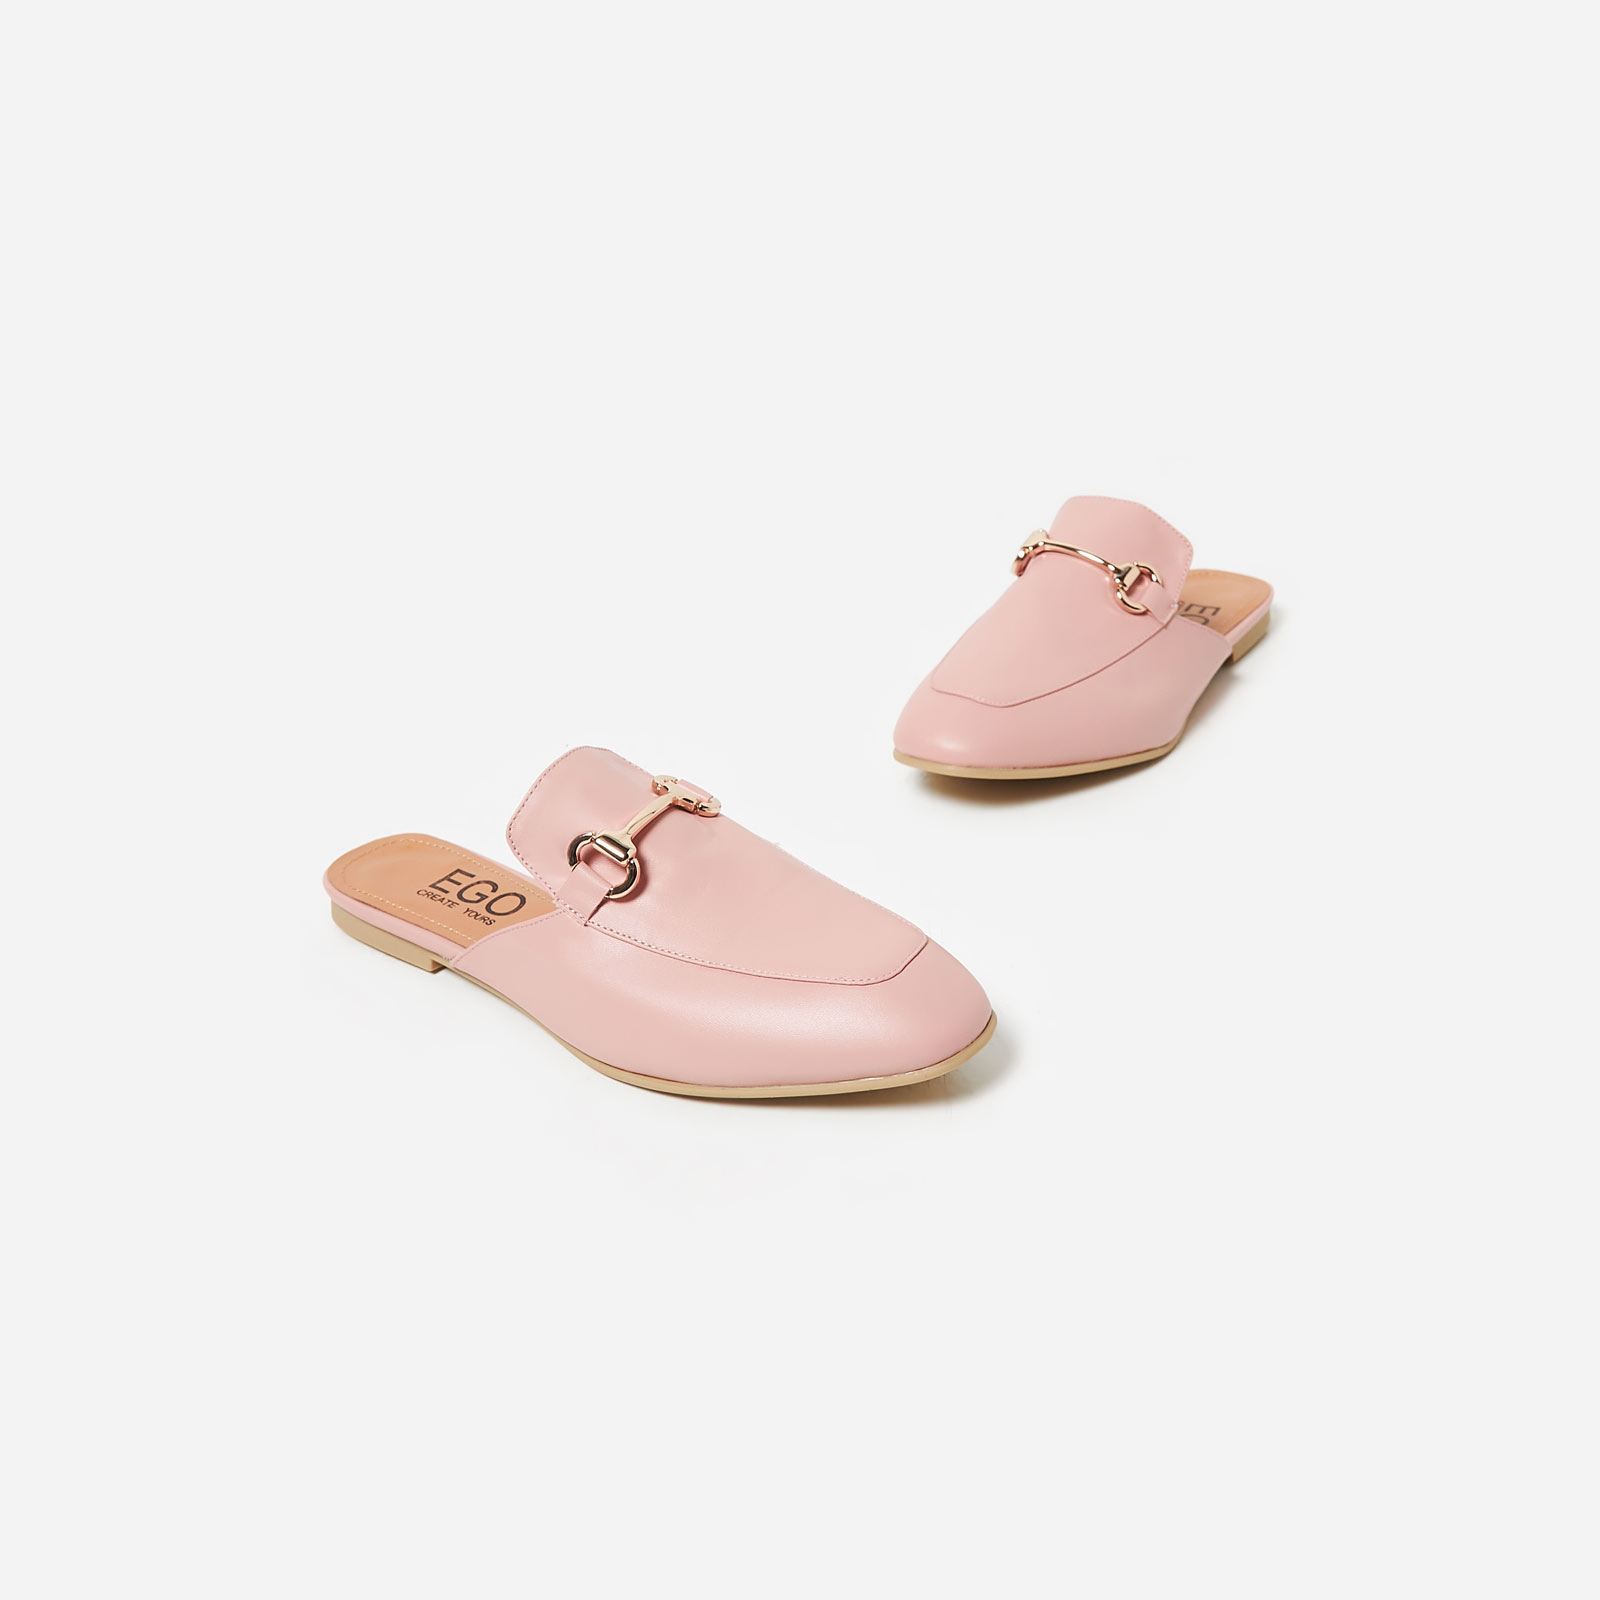 Miley Flat Mule In Pink Faux Leather Image 1